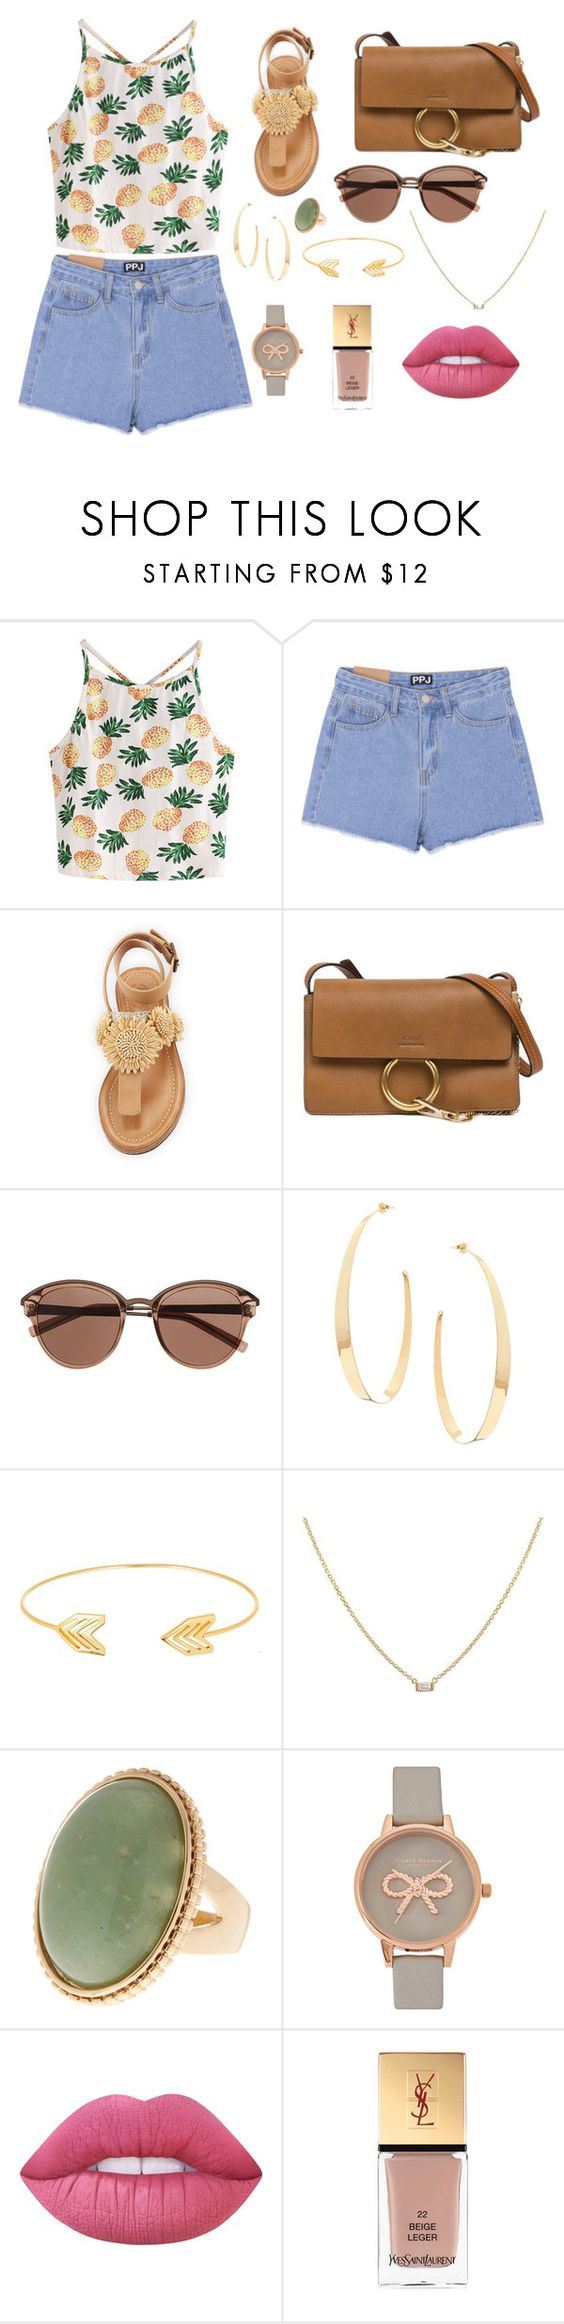 """Untitled #9"" by soninha97 on Polyvore featuring WithChic, Bettye, Chloé, Witchery, Lana, Lord & Taylor, Olivia Burton, Lime Crime and Yves Saint Laurent"